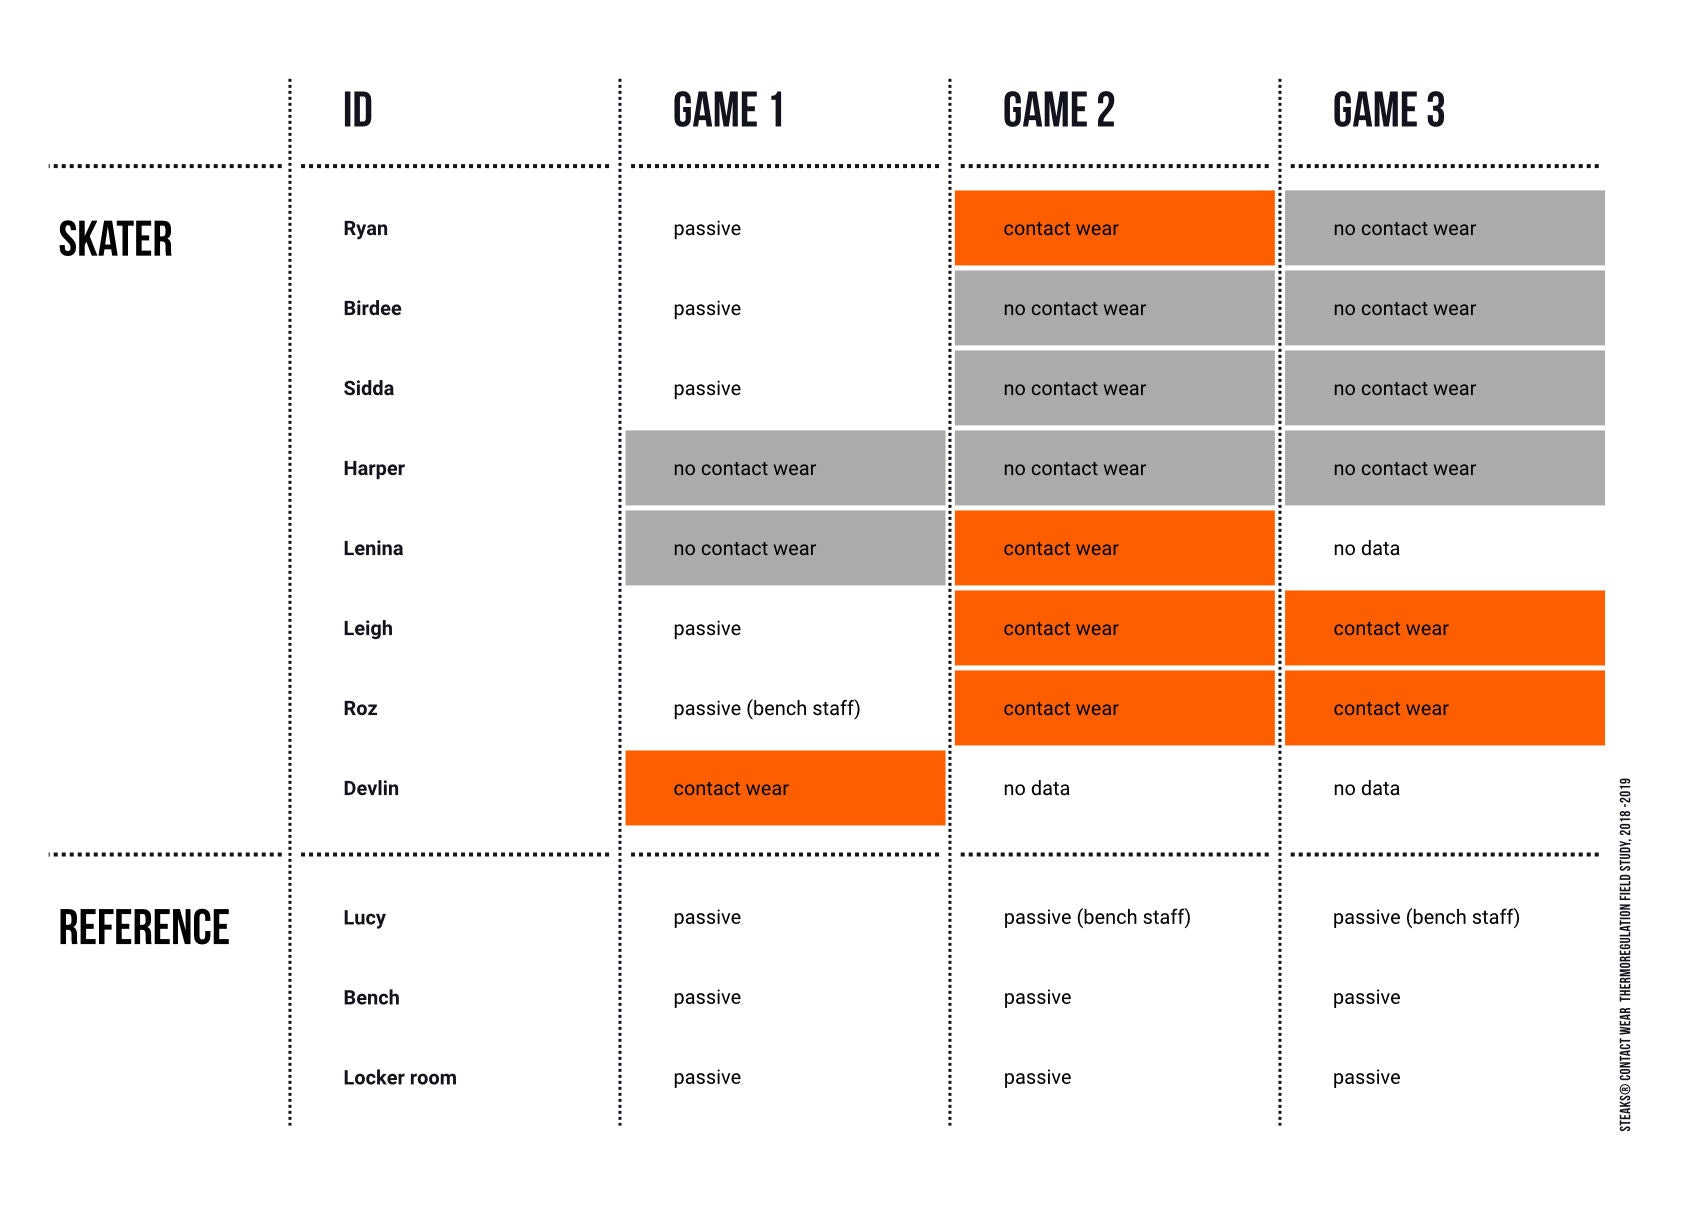 Table 1: Overview of the game day activity and the garments worn by skaters as well as the reference measurements; colour coding: white (not played/ no data), orange (wearing a STEAKS® Contact Wear padded contact top in the game), grey (wearing regular sports bras and shirts and no STEAKS® Contact Wear tops).